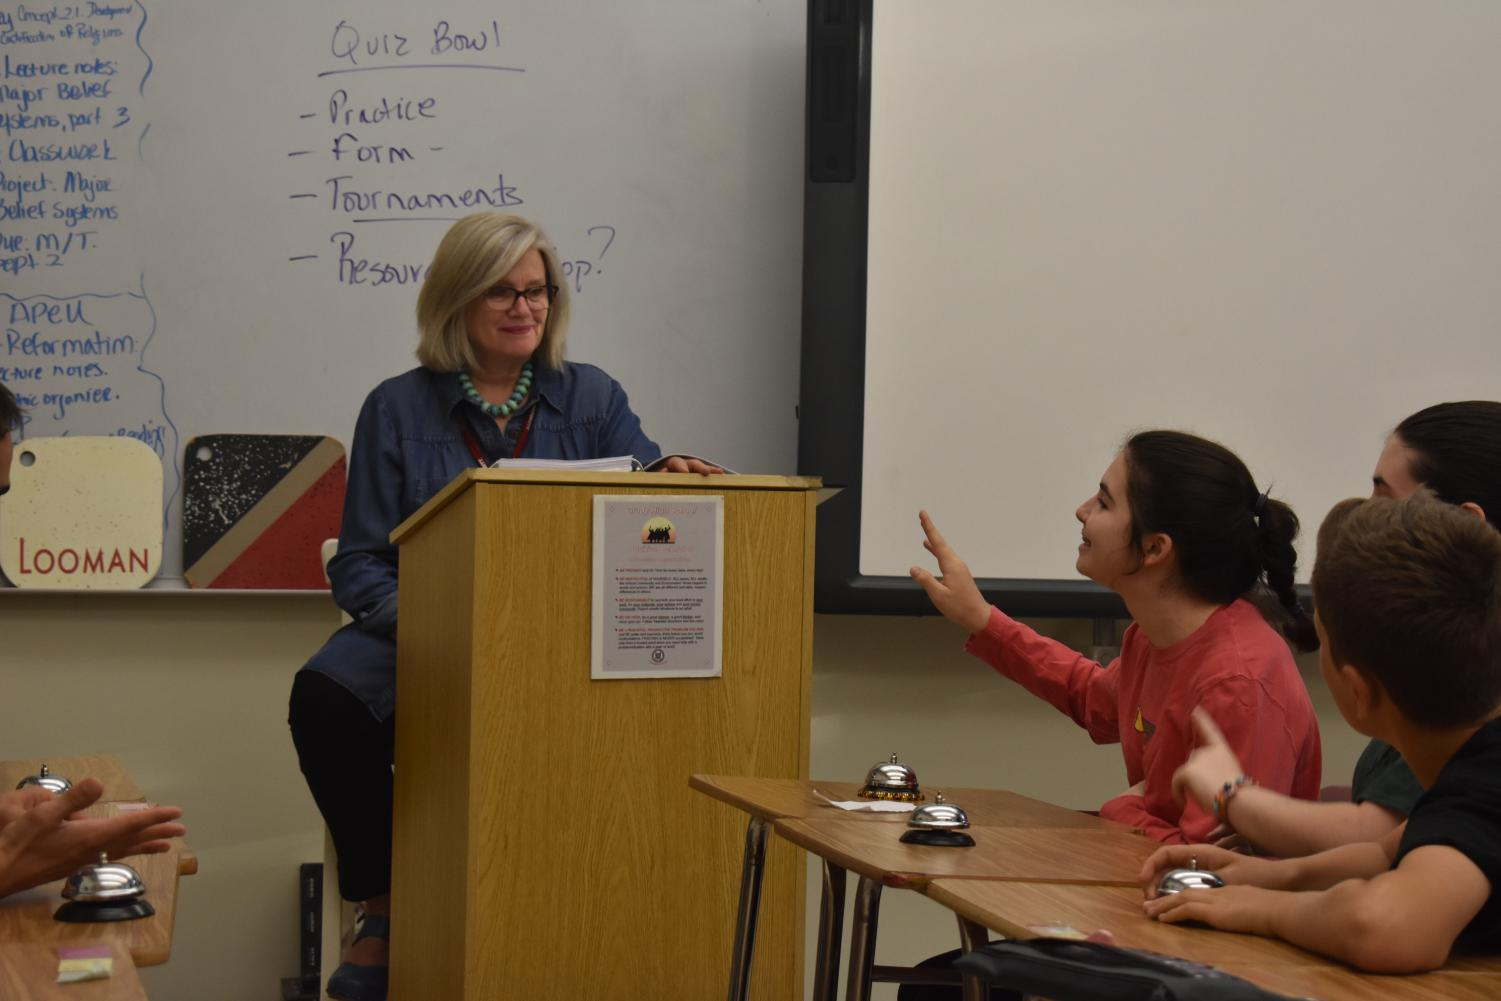 FIRST TO THE BUZZER: Freshman Joanna Baker buzzes to answer practice questions posed by teacher sponsor Sarah Looman at Quiz Bowl's after-school practice.